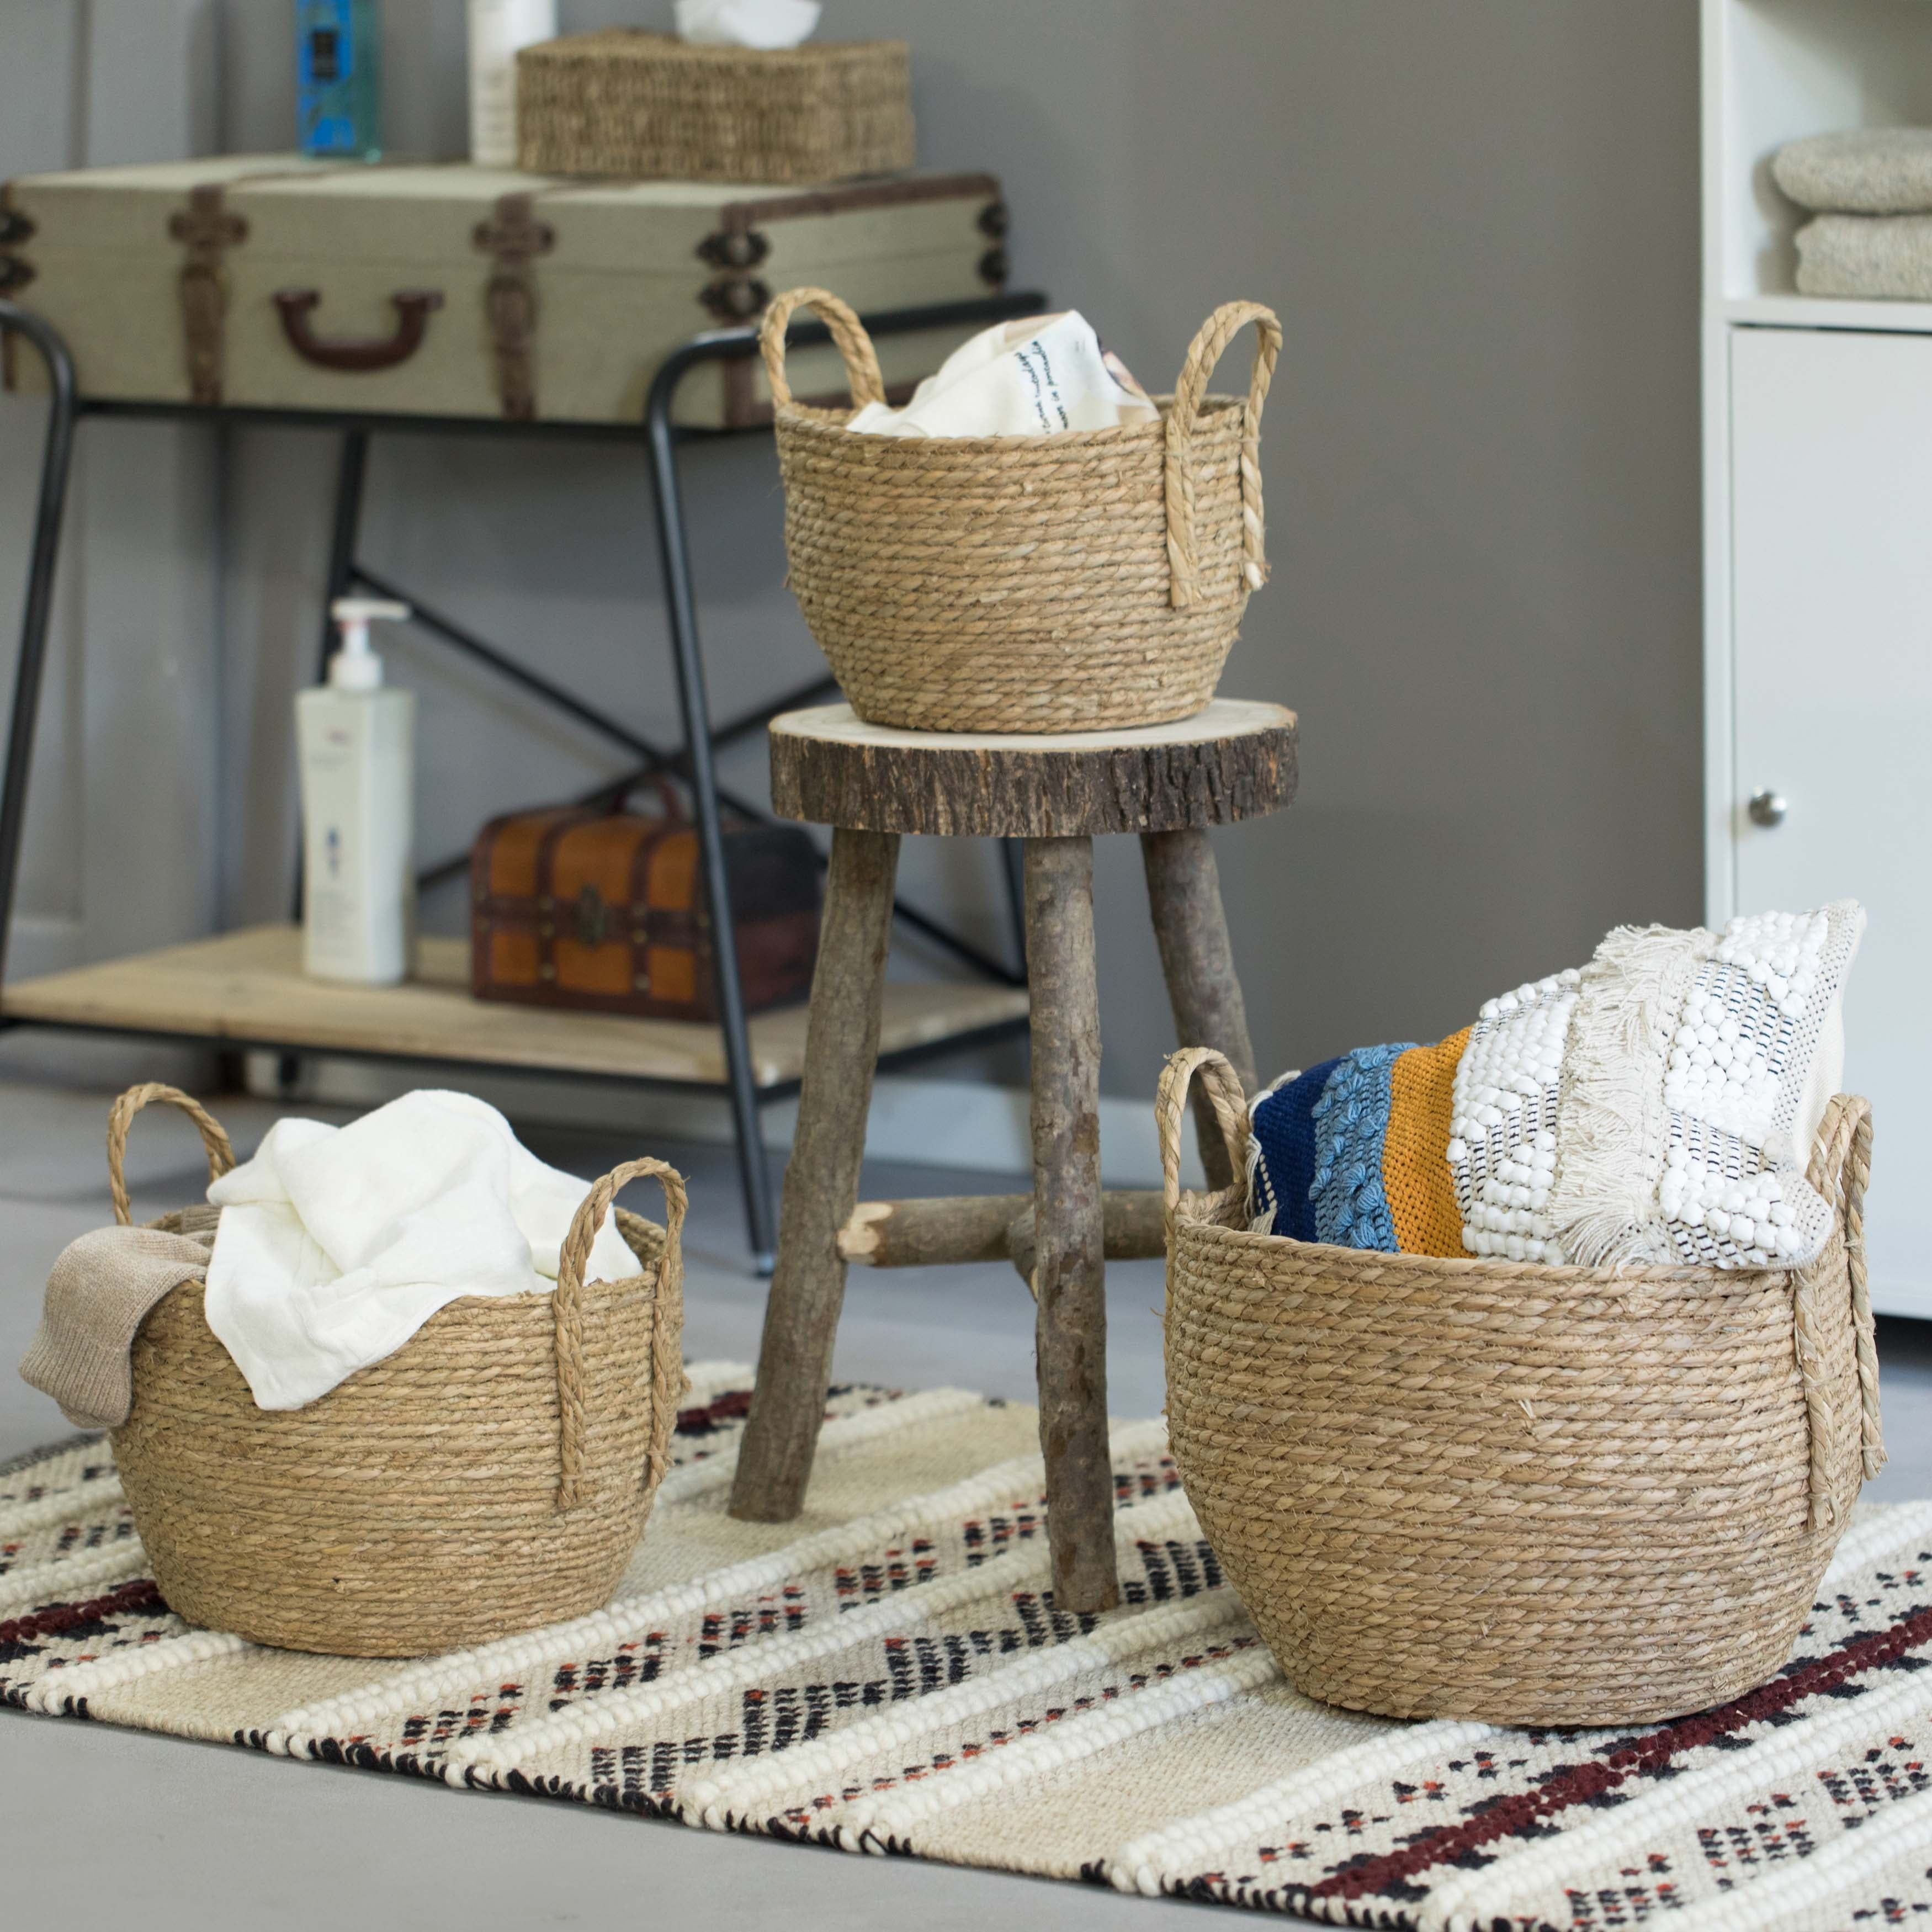 Decorative Round Wicker Woven Rope Storage Blanket Basket With Braided Handles Set Of 3 Overstock 32561605